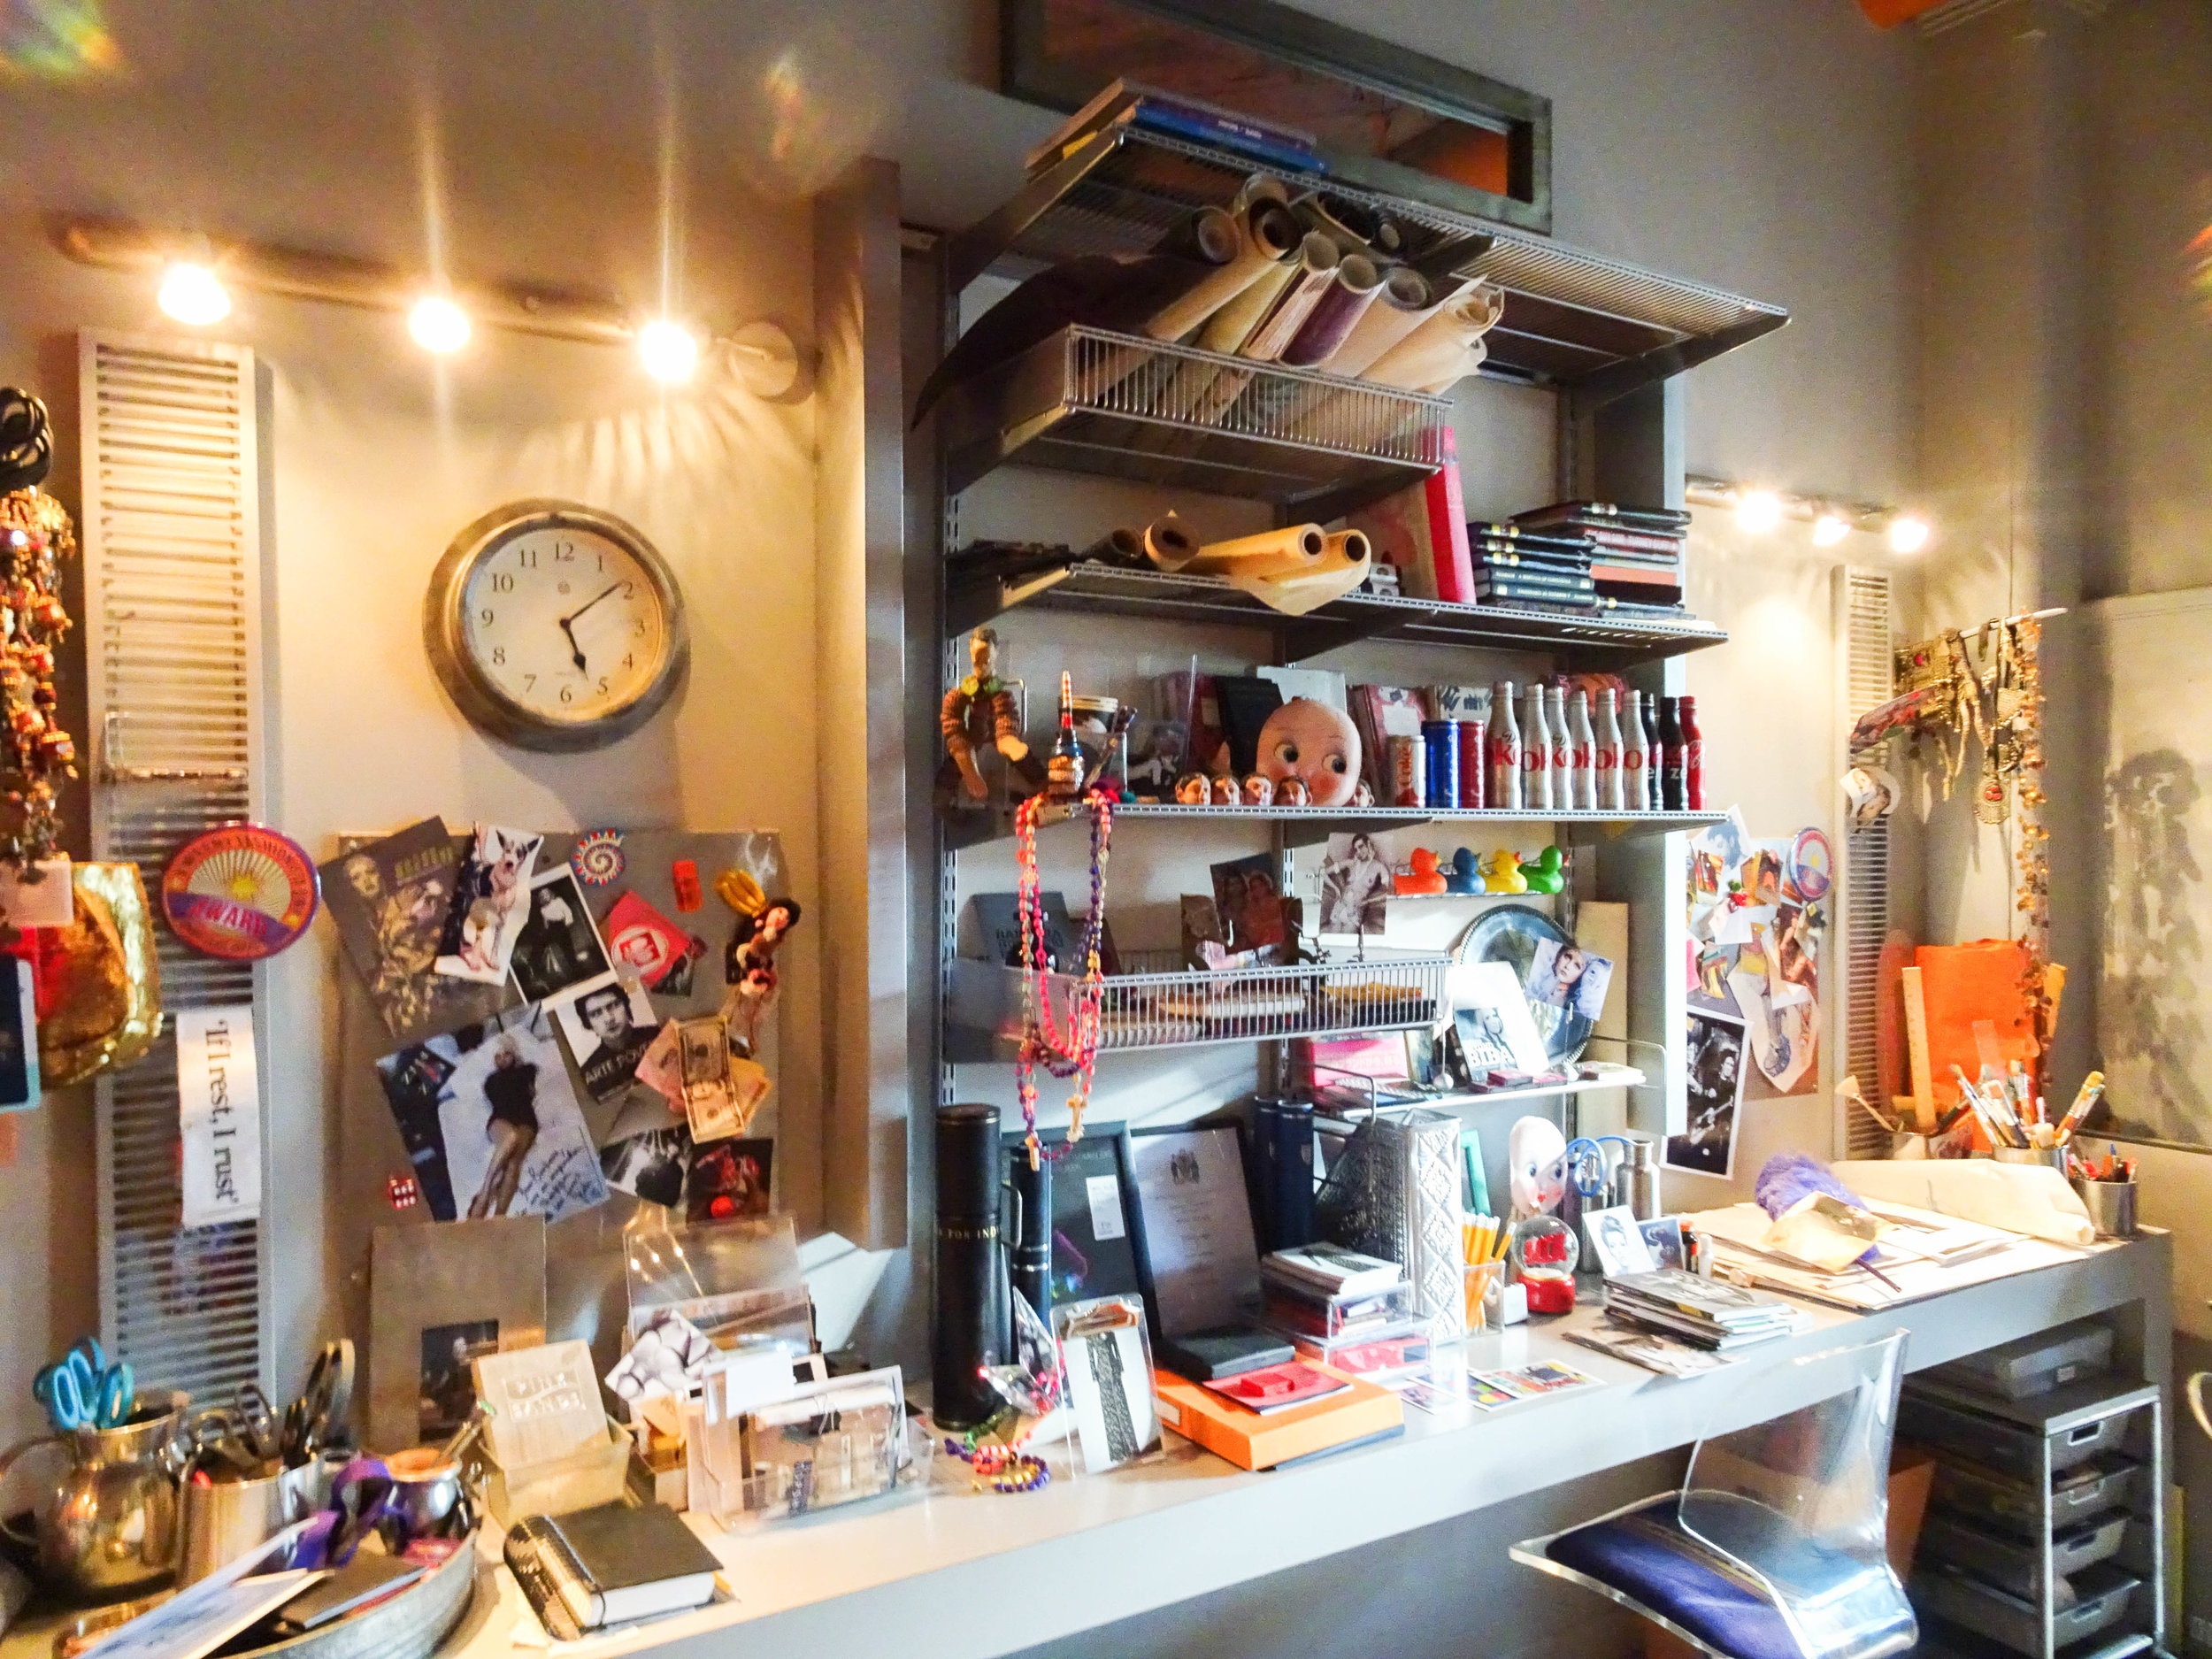 This home office is oozing with creativity and collectables